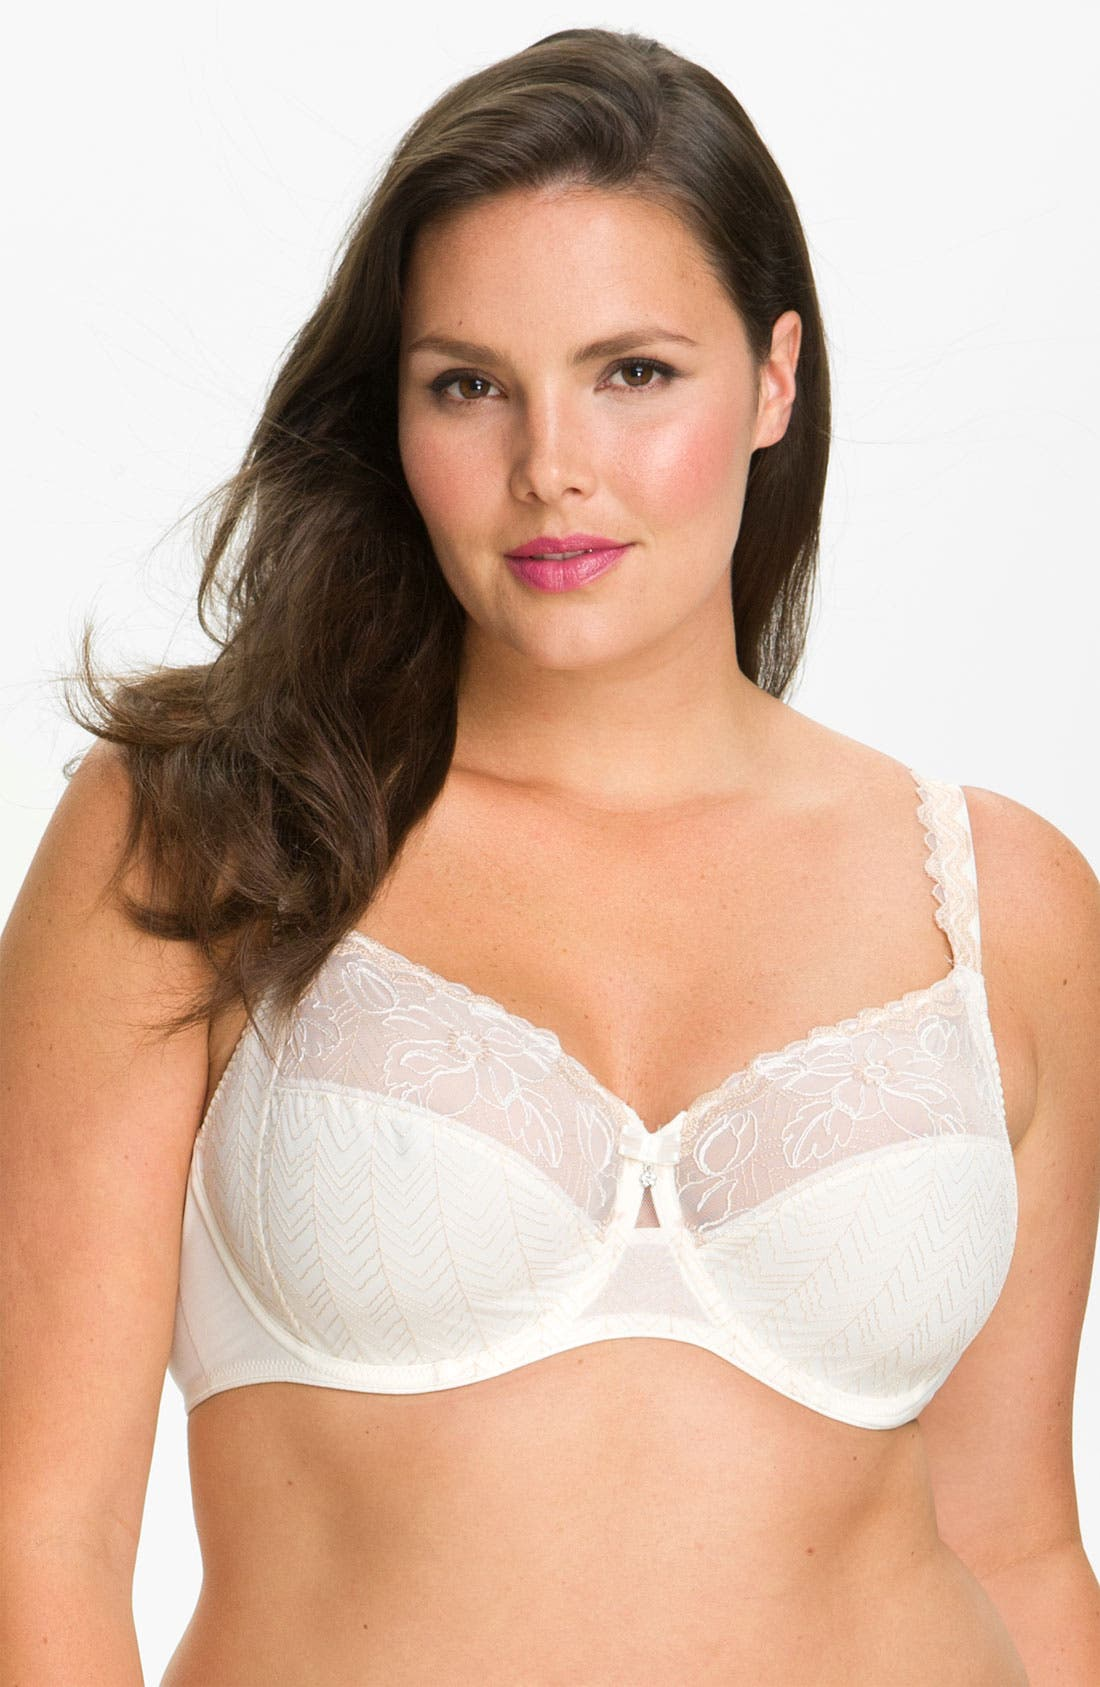 Alternate Image 1 Selected - Chantelle Intimates 'Saint Honoré' Underwire Bra